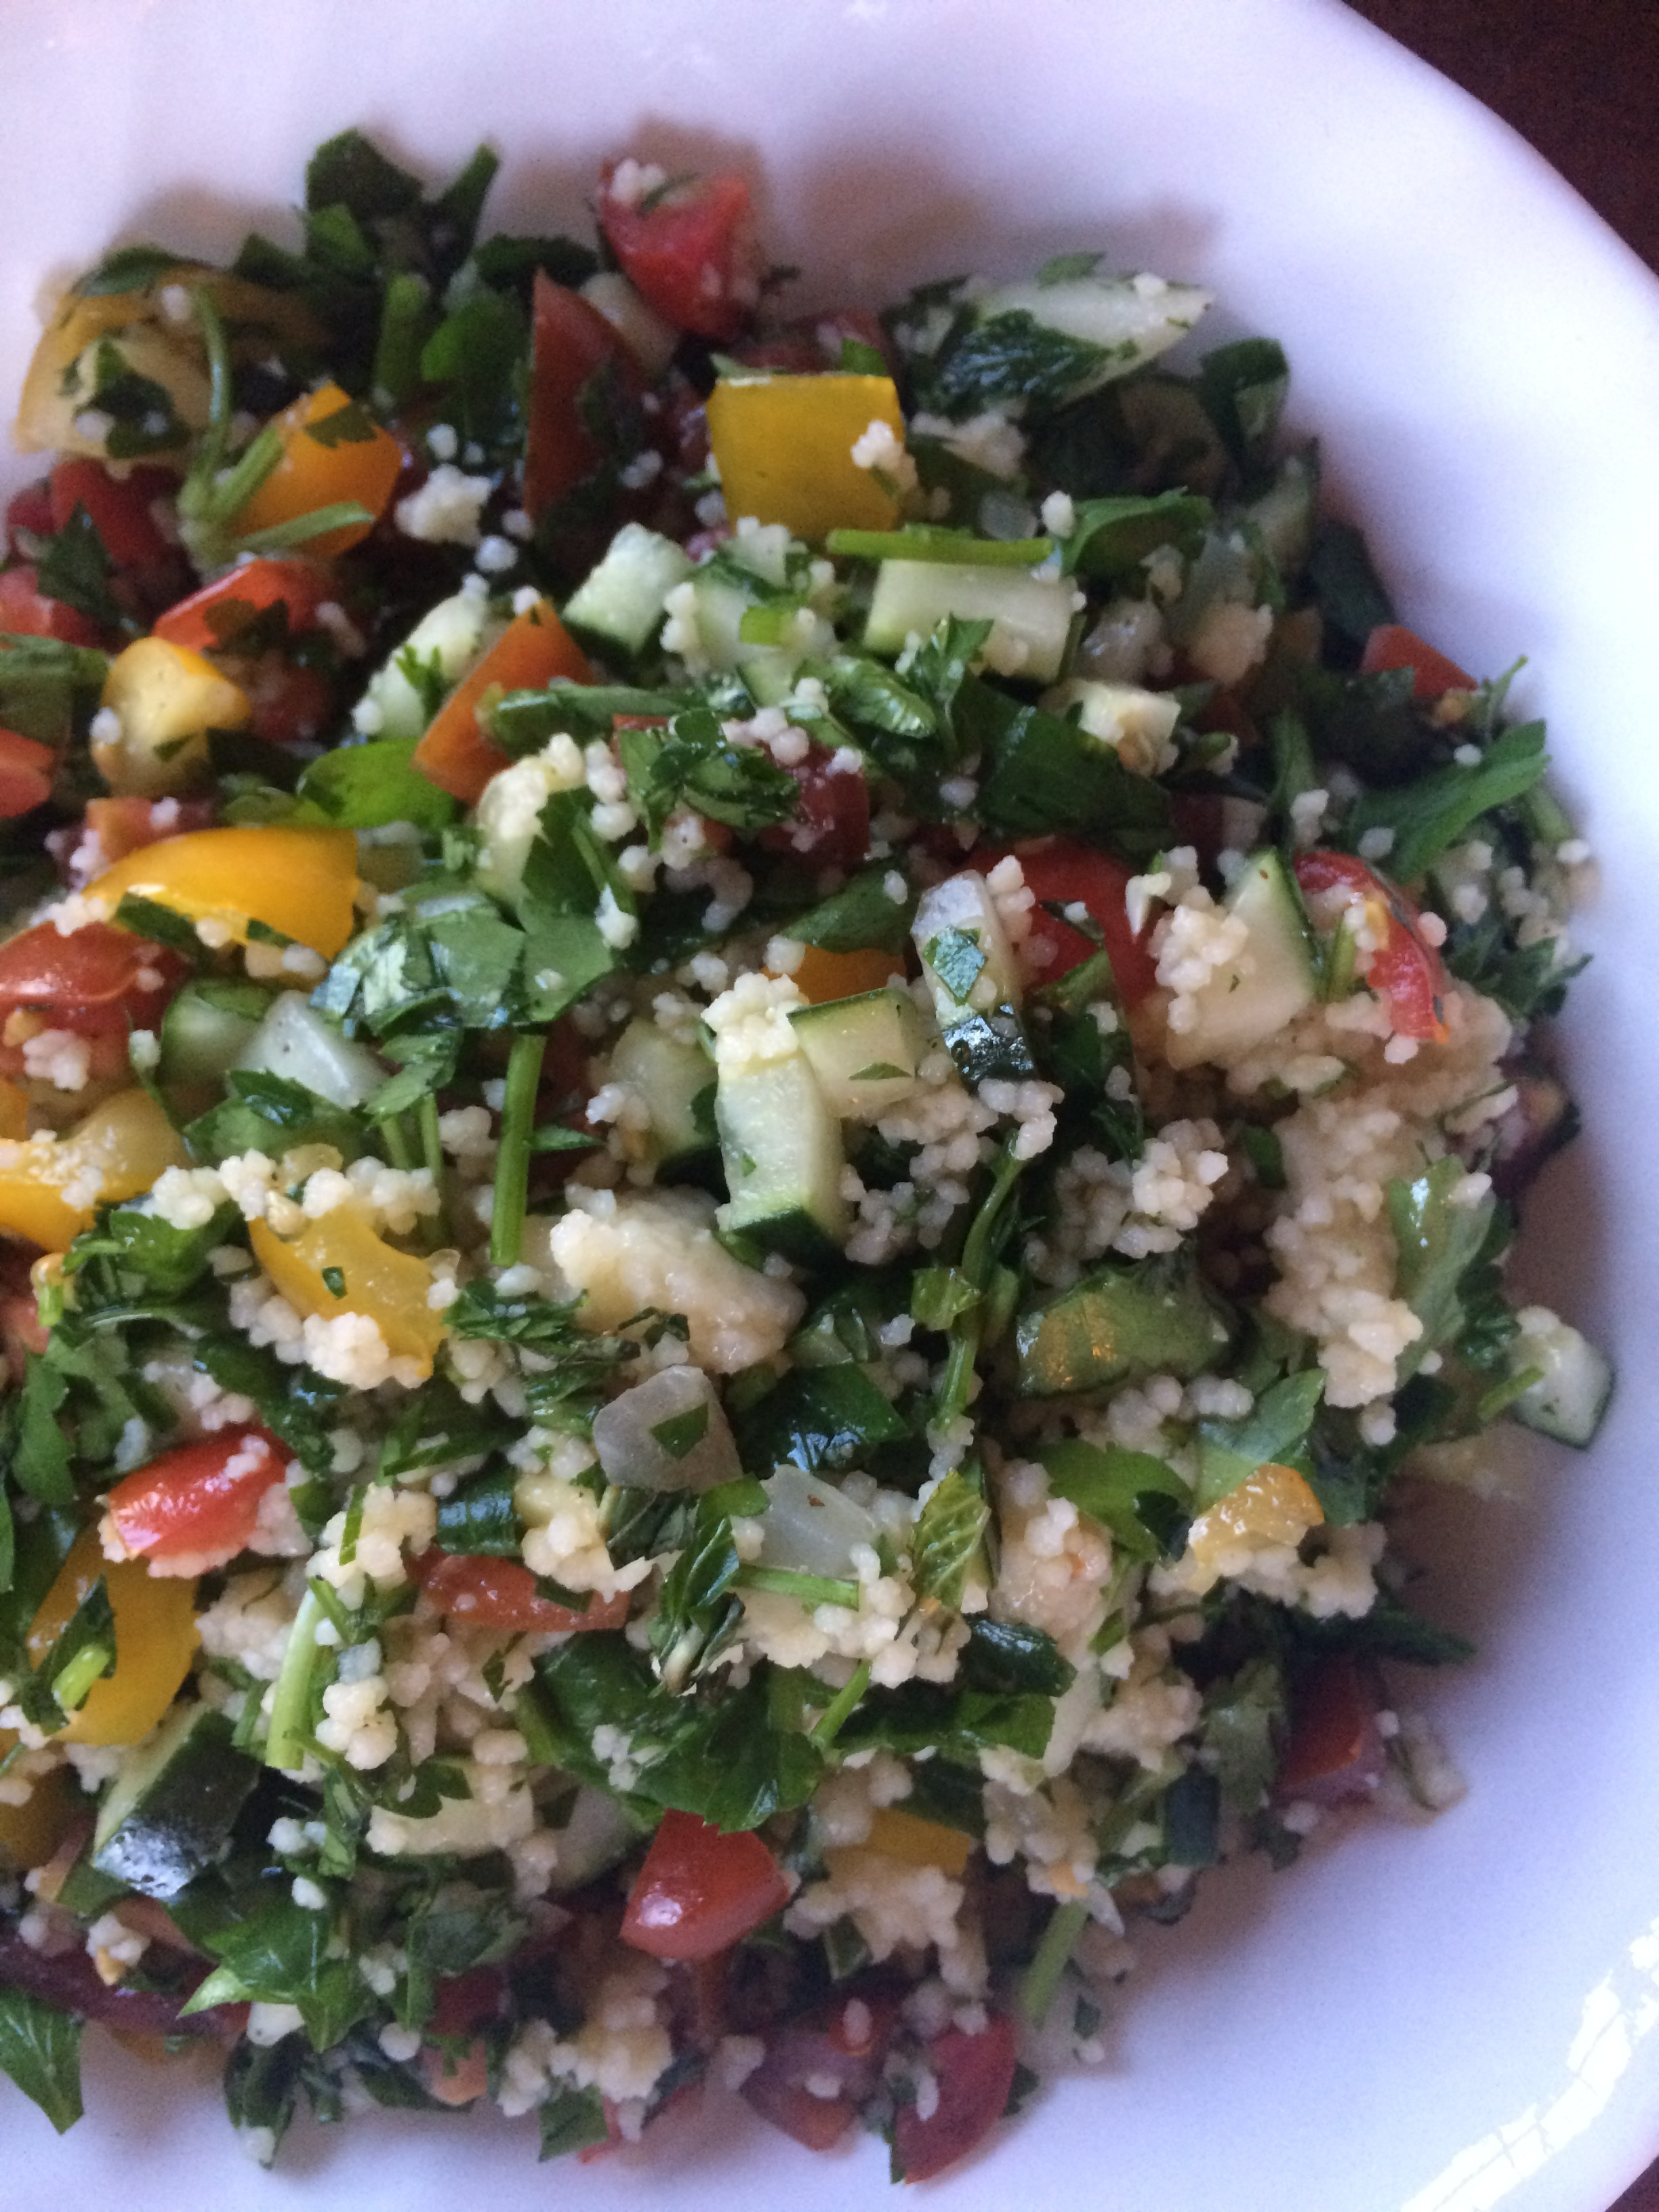 tabbouleh || planting my roots - a washington, dc-based food blog filled with nourishing and seasonal recipes